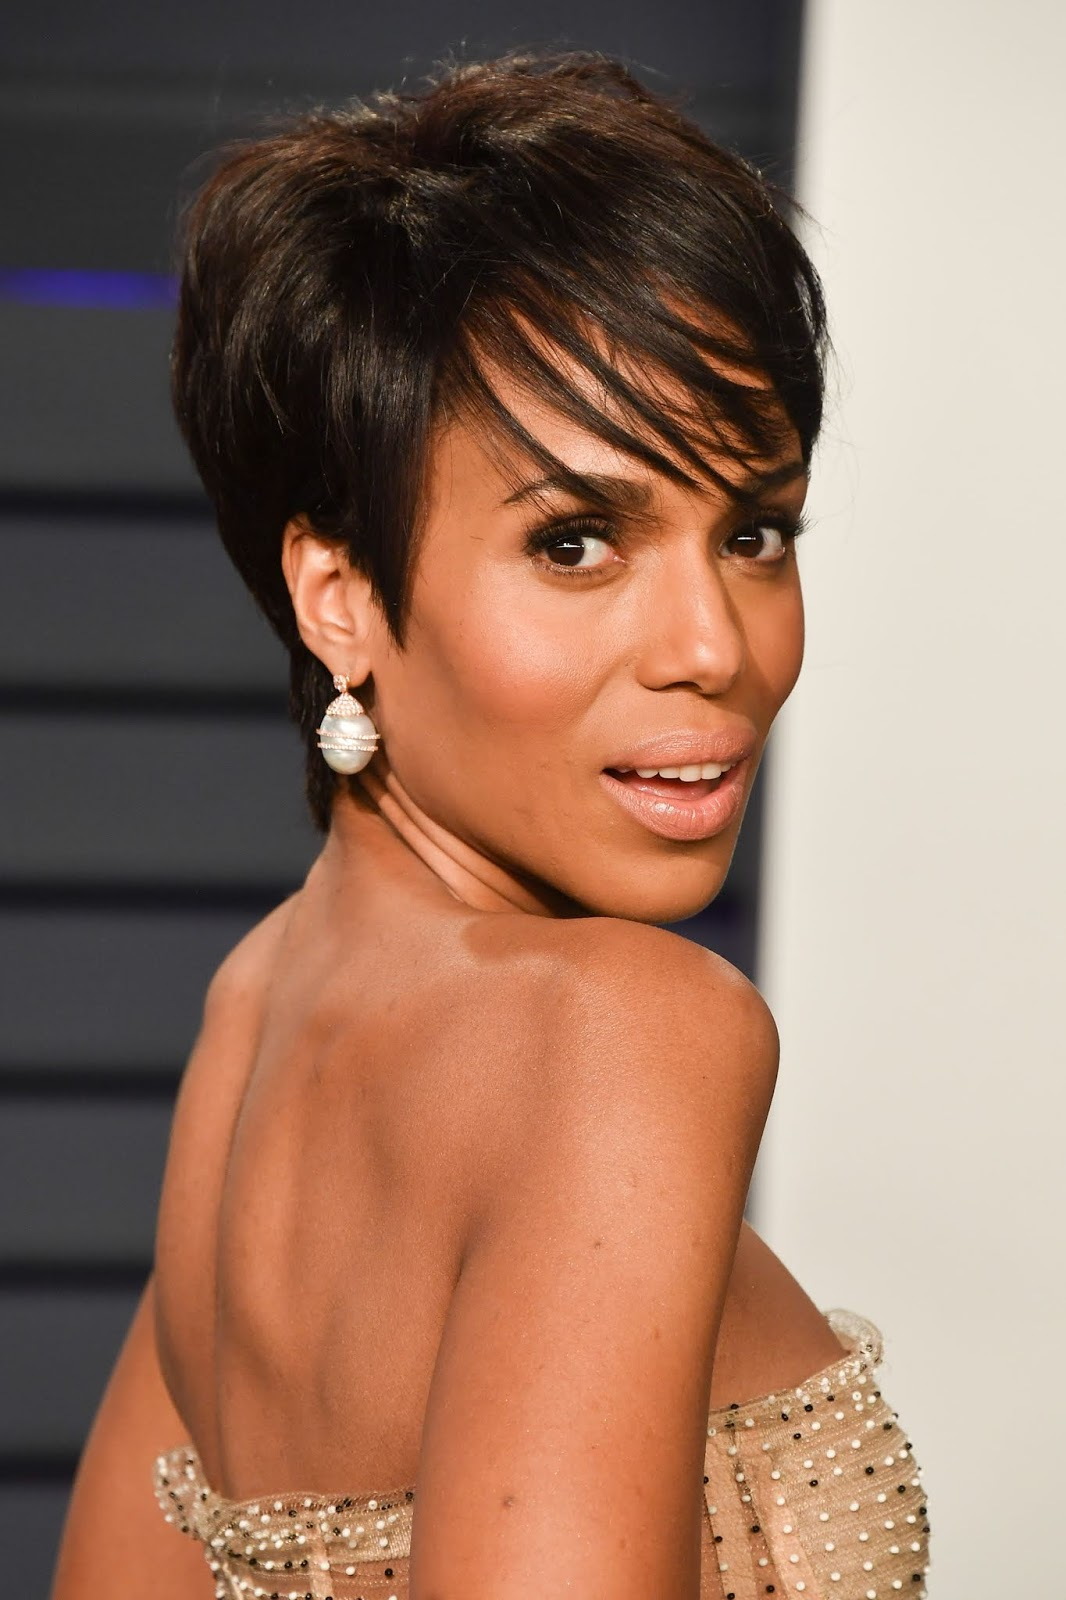 Kerry Washington's Oscars Pixie Cut Will Convince You to Go Short